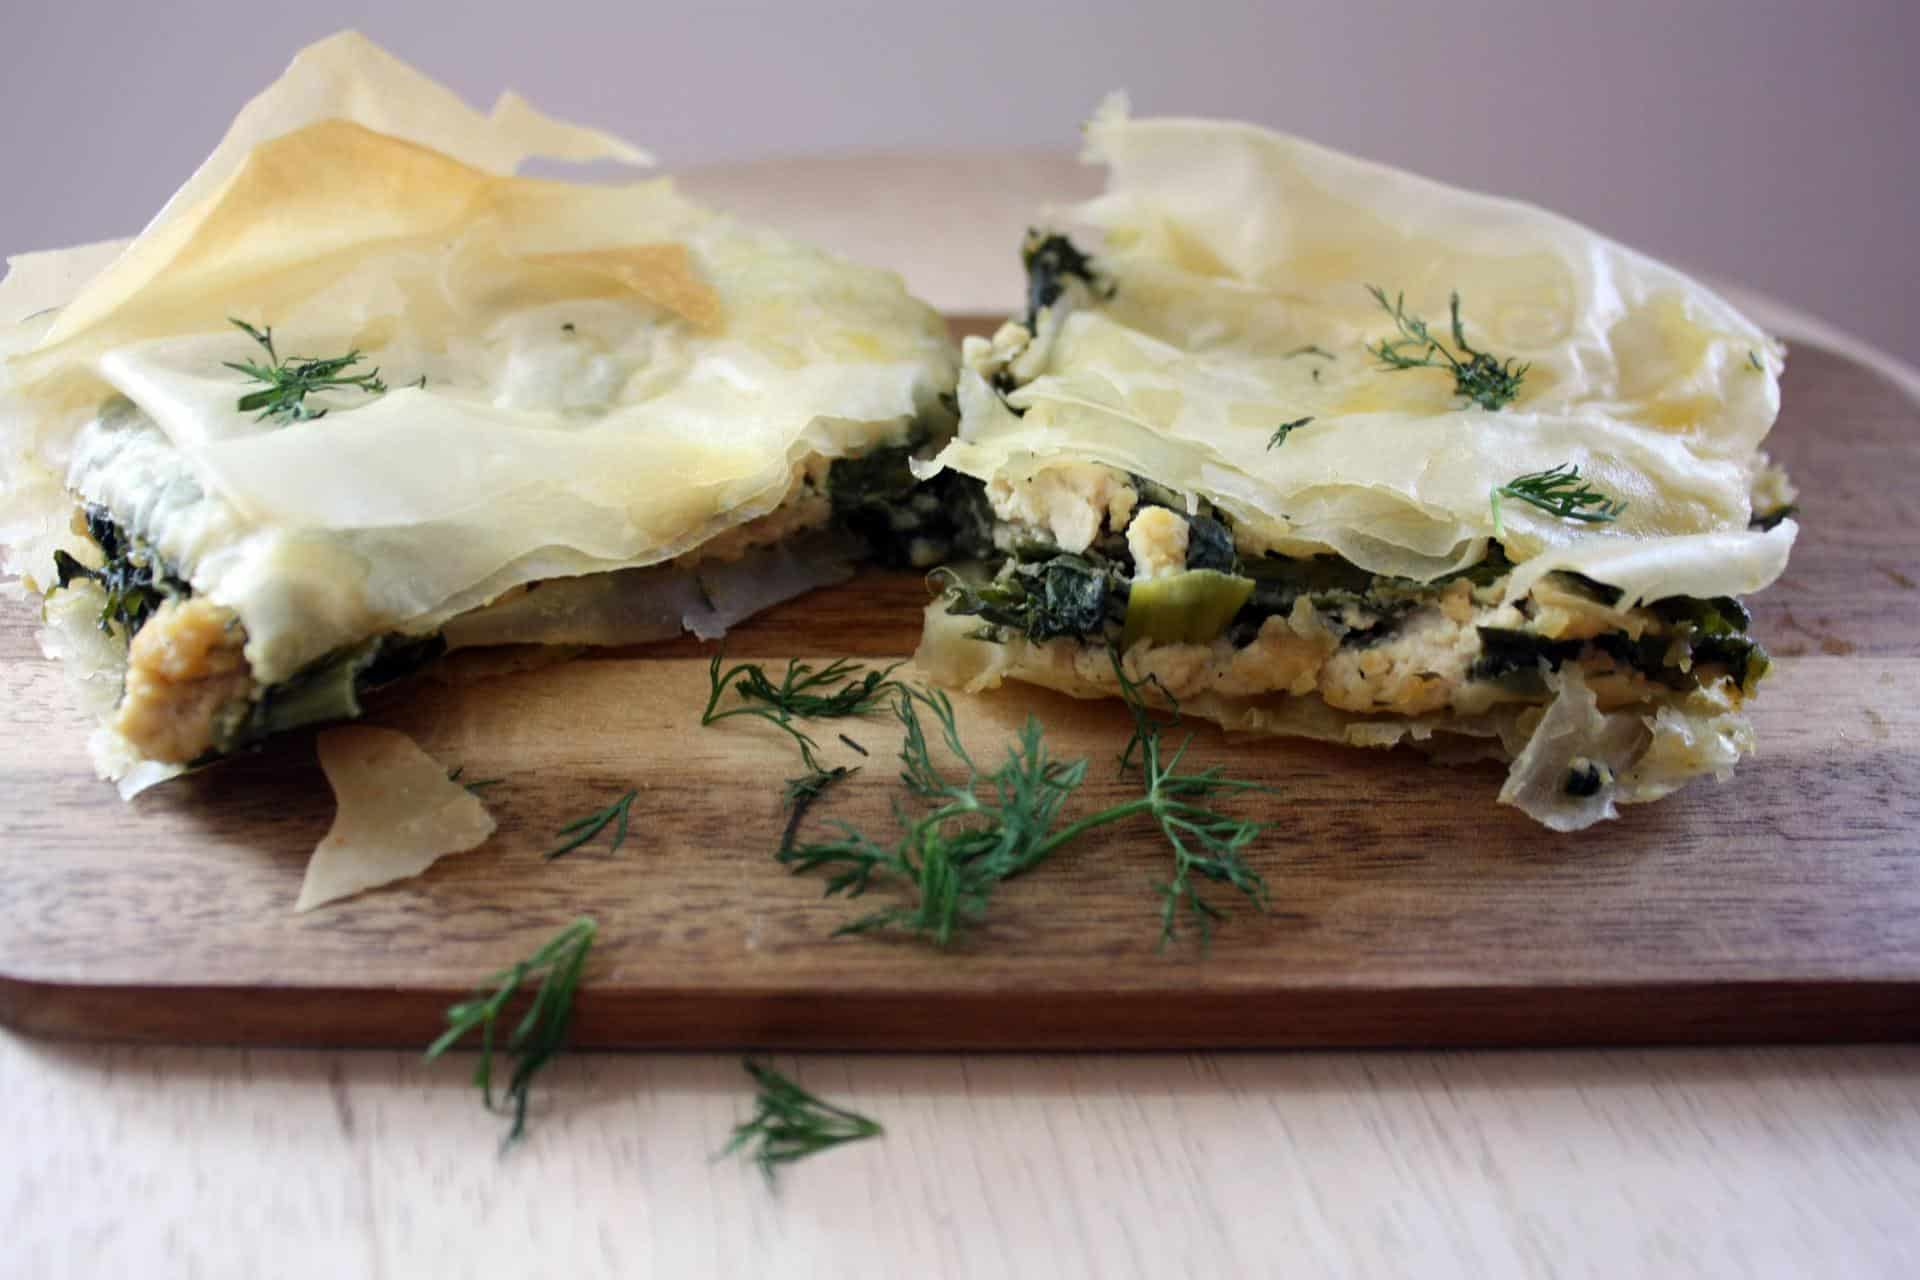 Vegan spanakopita (Greek spinach and feta pie)